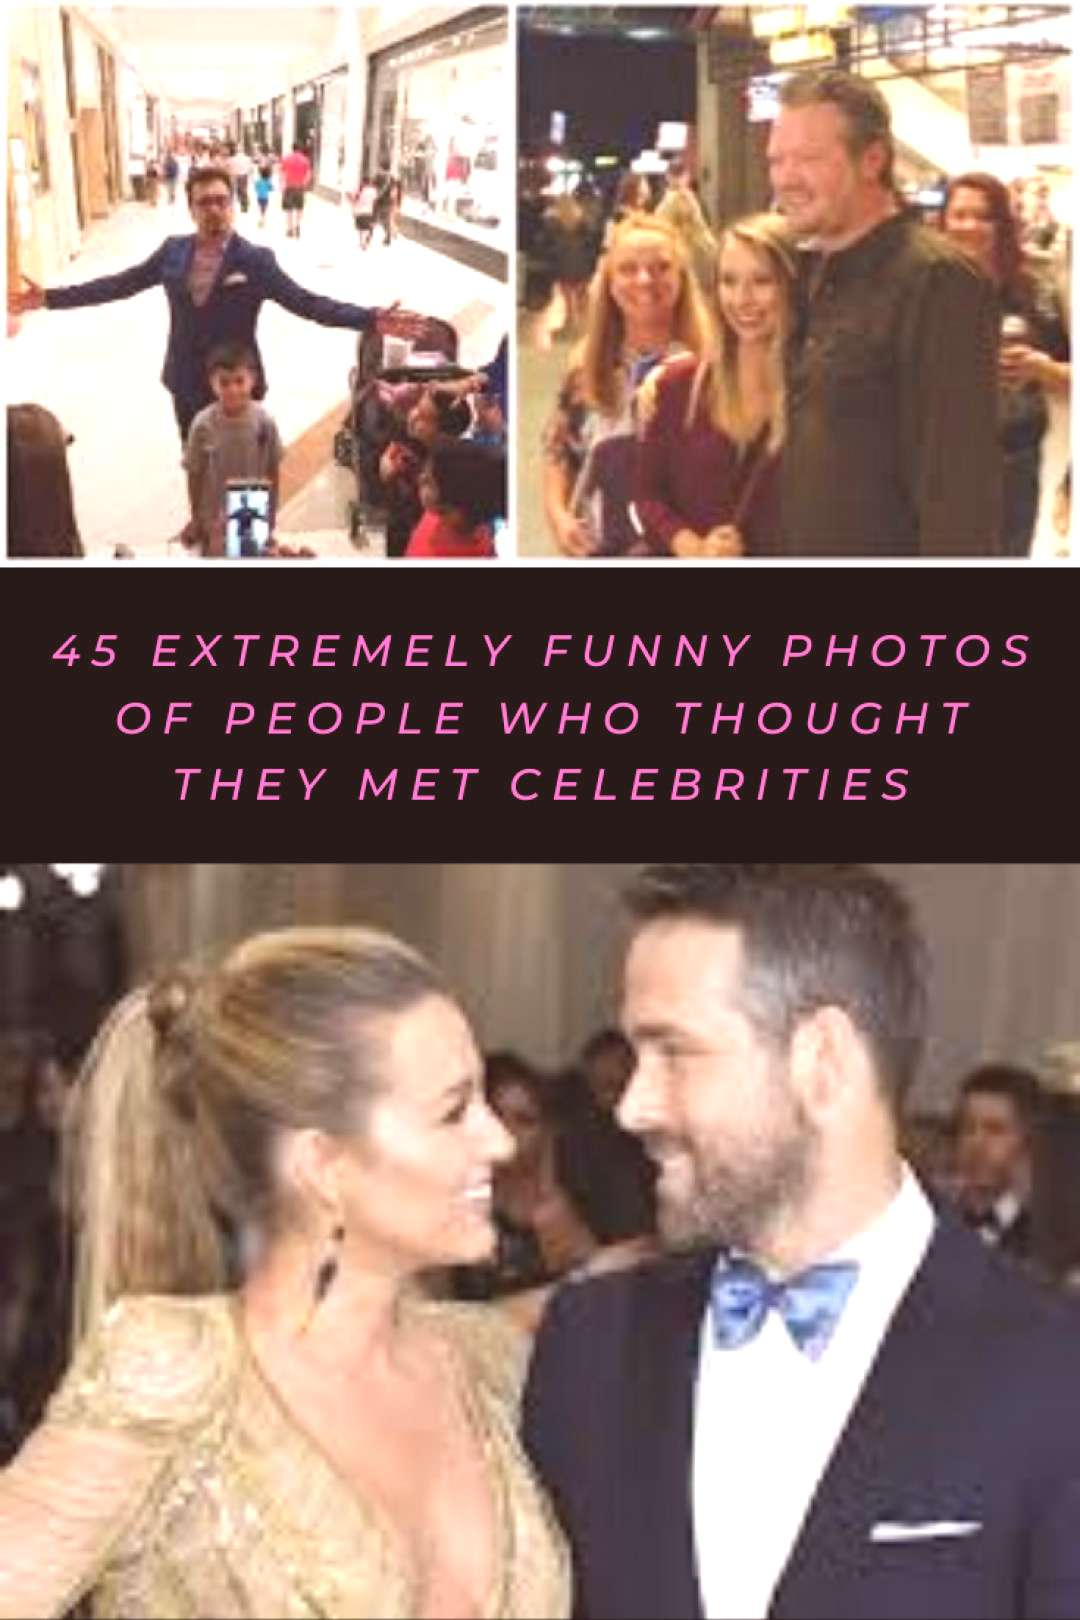 45 extremely funny photos of people who thought they met celebrities